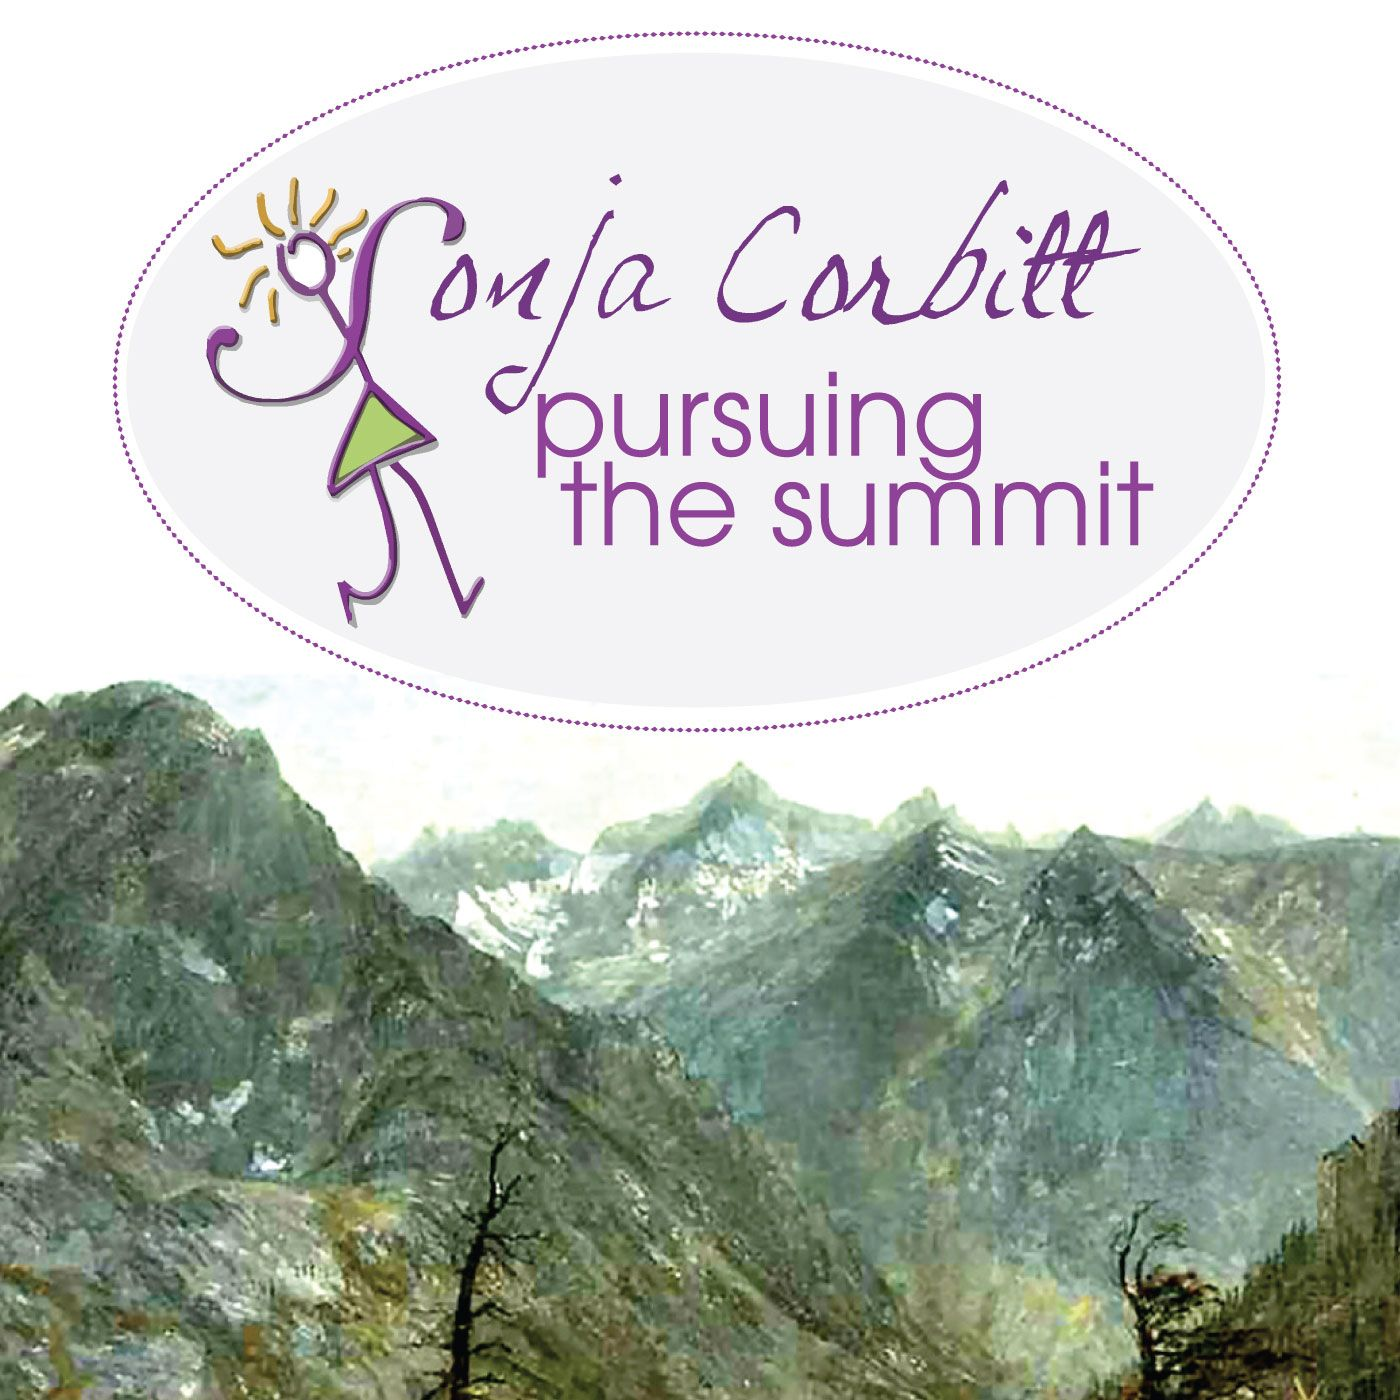 Pursuing the Summit, Guest Hosted by Jennifer Longworth - Confirmation & Gifts of the Holy Spirit 04/28/15